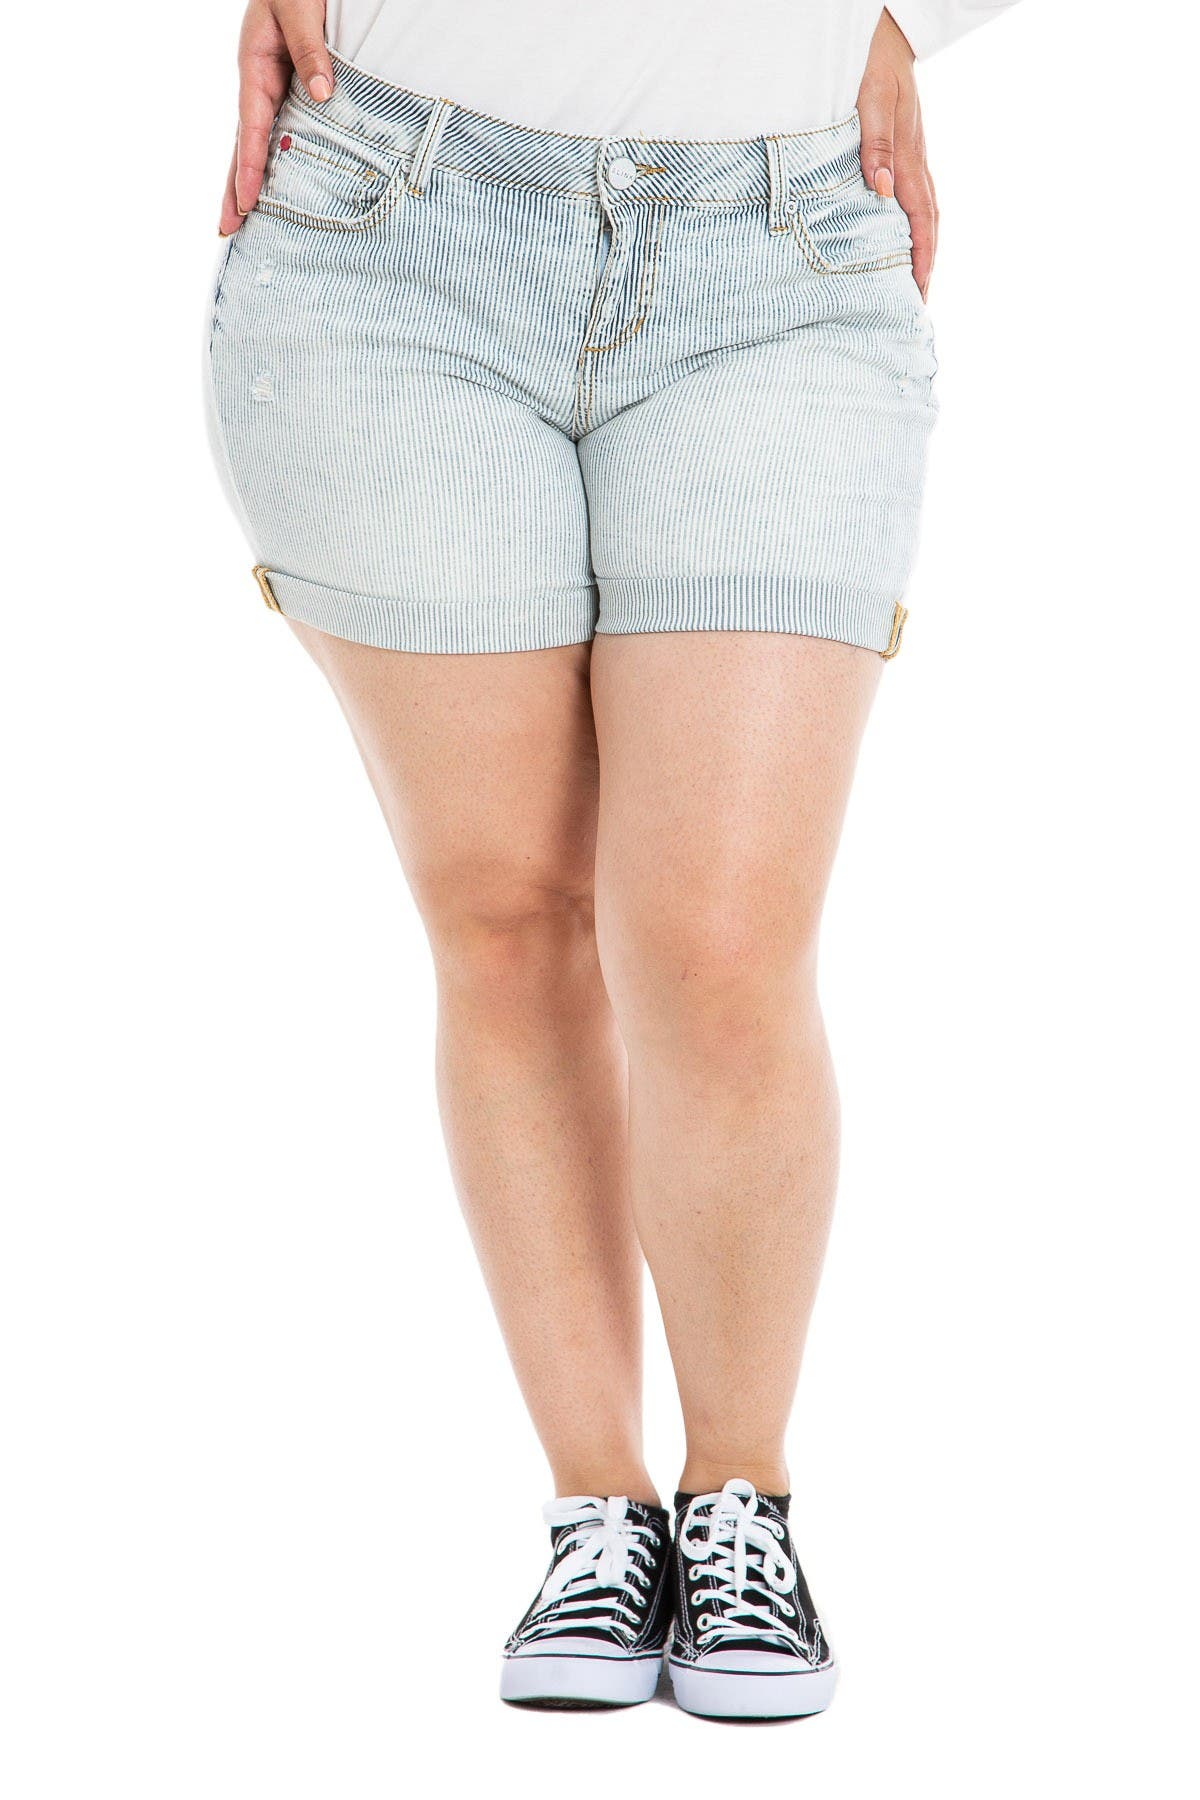 Image of SLINK JEANS Striped High-Rise Shorts